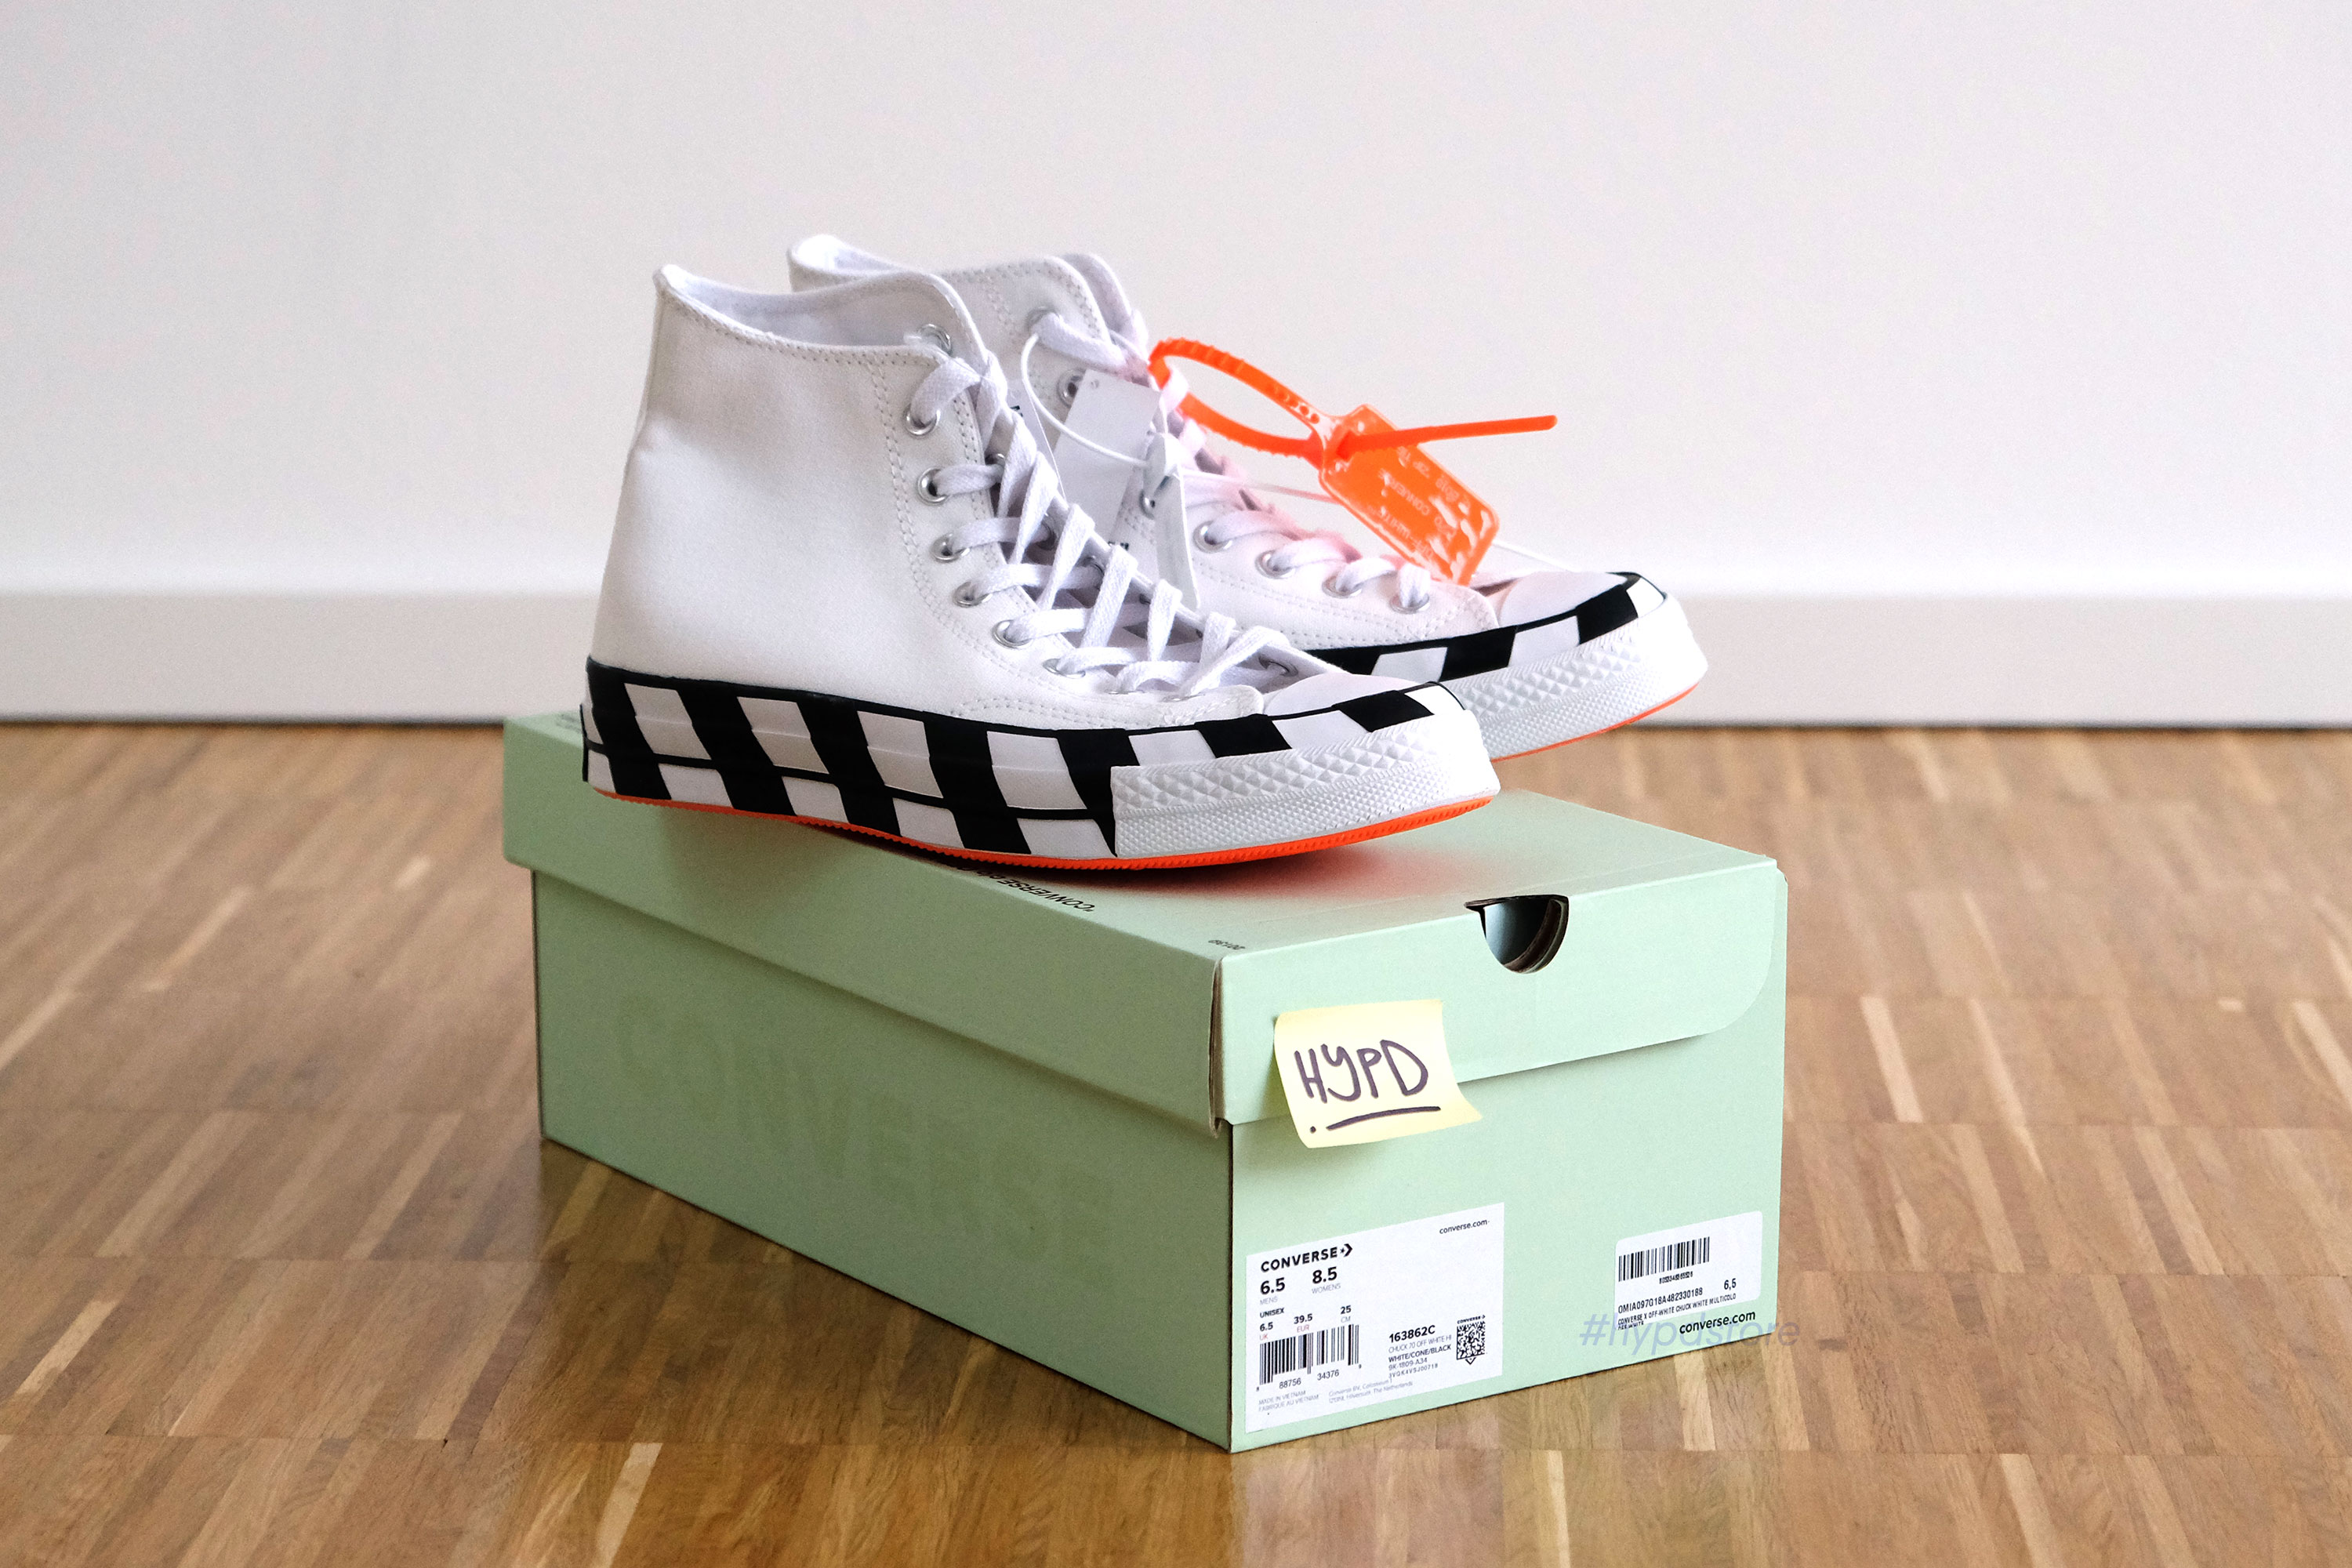 Converse Chuck Taylor x Off White by Virgil Abloh US 6.5 All Star 70s 163862C